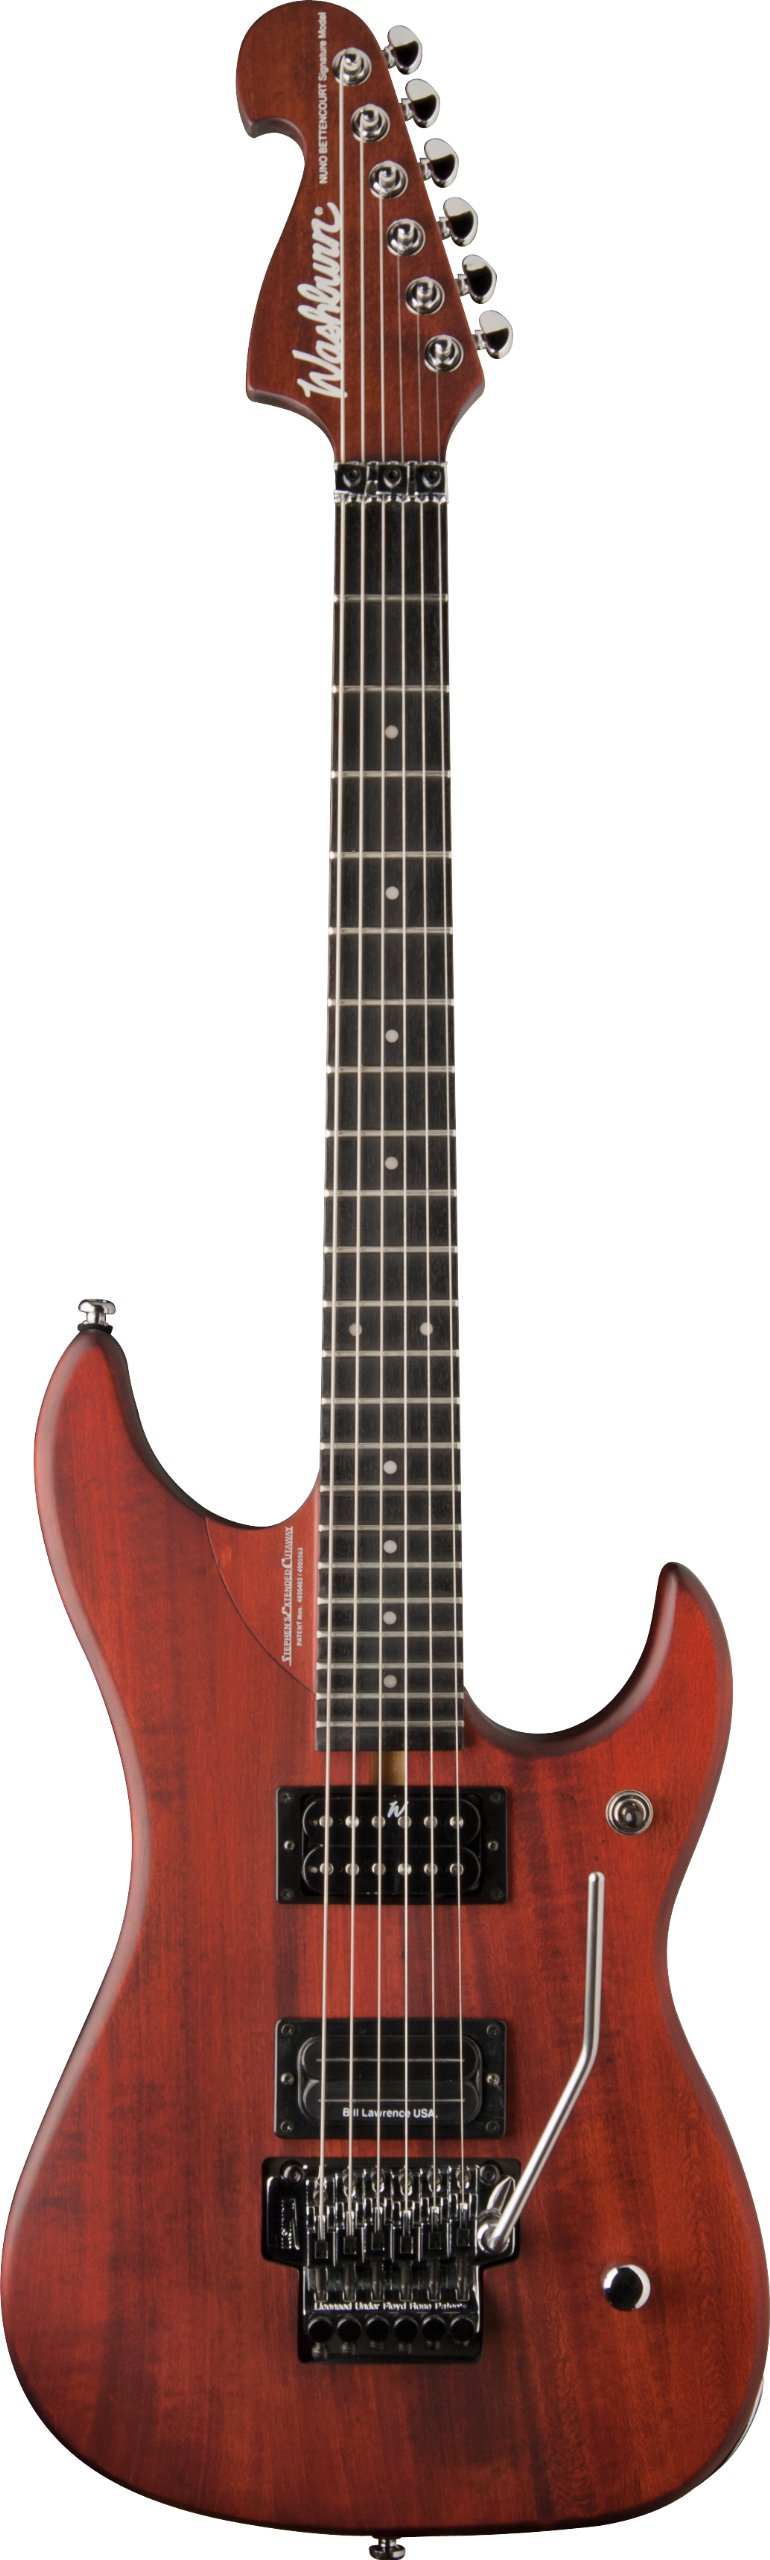 Cheap Other 6 String Solid-Body Electric Guitar Right Padauk Vint. Matte (Other) Black Friday & Cyber Monday 2019